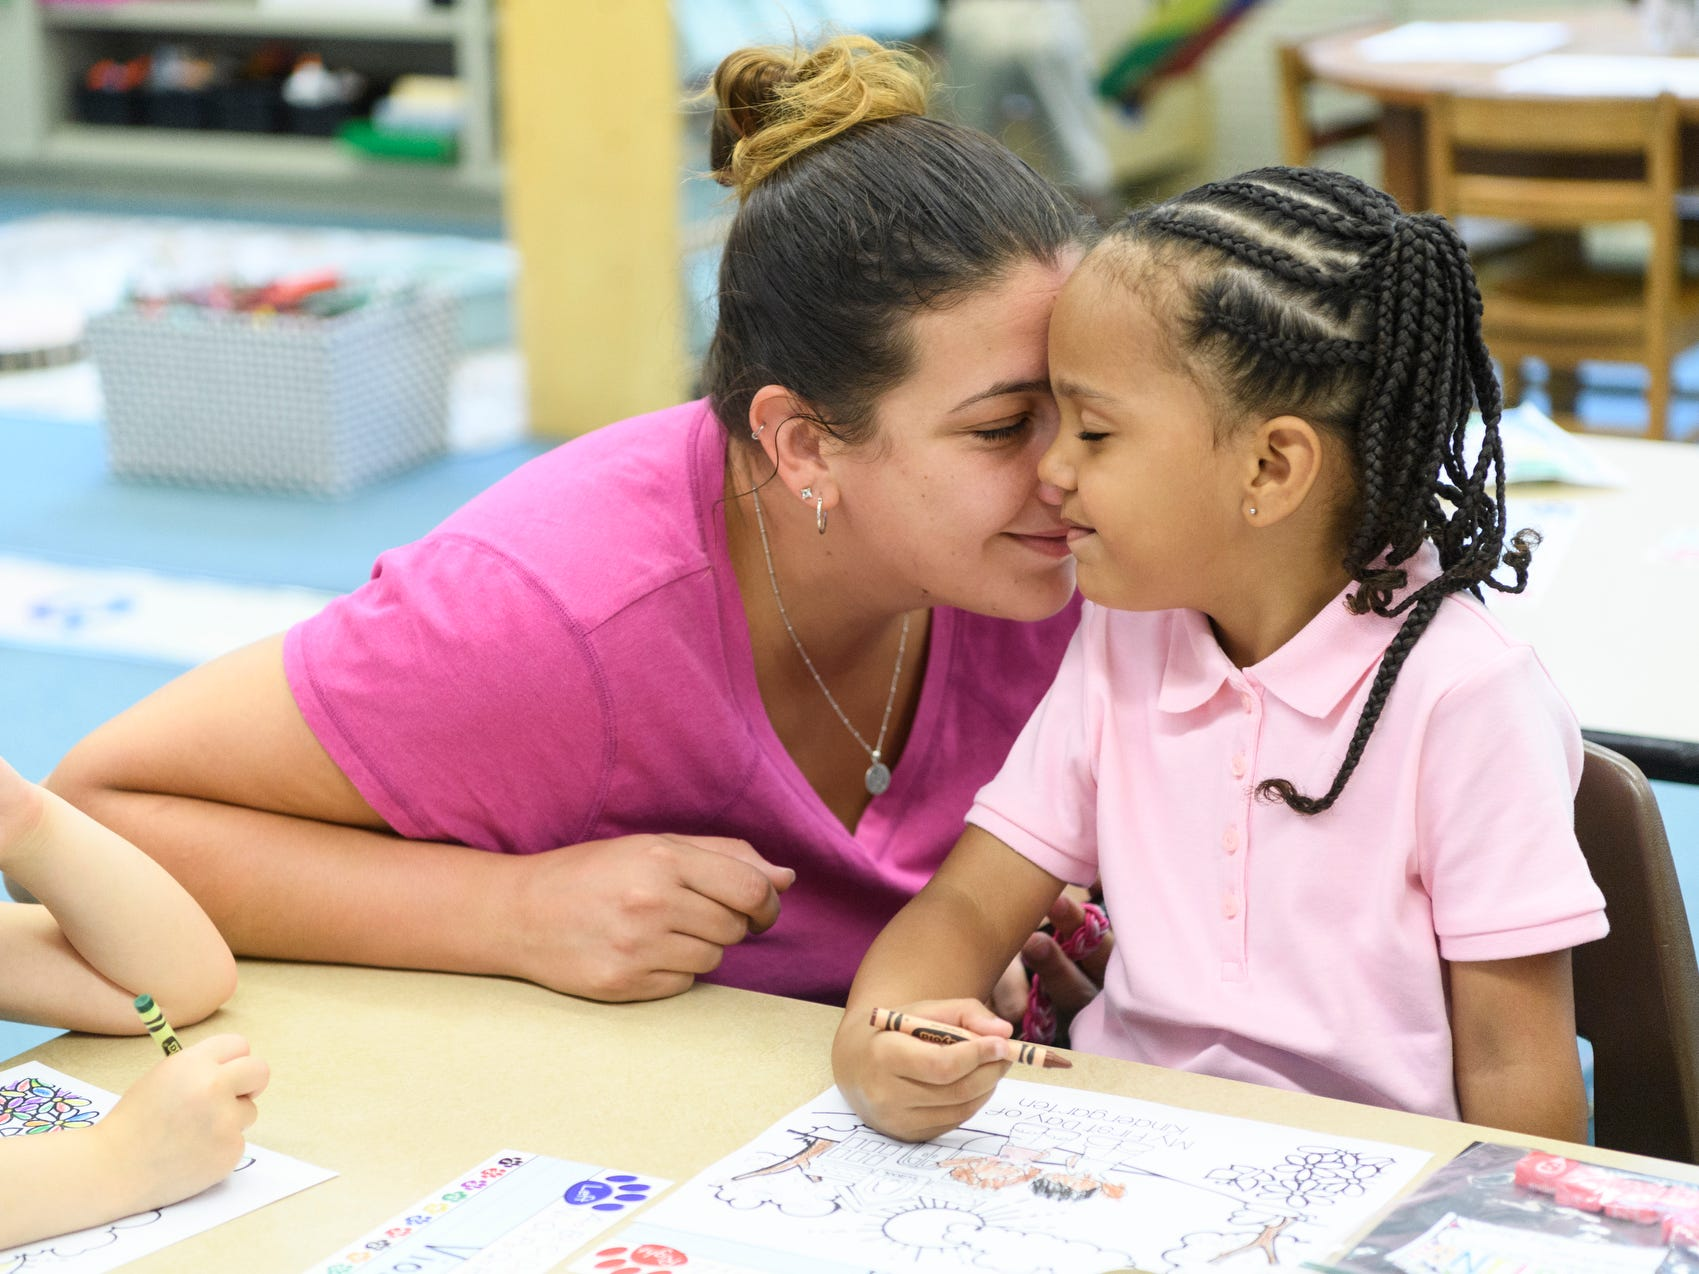 Megan French says goodbye to her five-year-old daughter Maliyah Cox inside kindergarten teacher Brooke Havill's classroom on the first day of school at Dexter Elementary School in Evansville, Ind., Wednesday, Aug. 8, 2018. Megan fought back tears as she left Maliyah working on a coloring page.